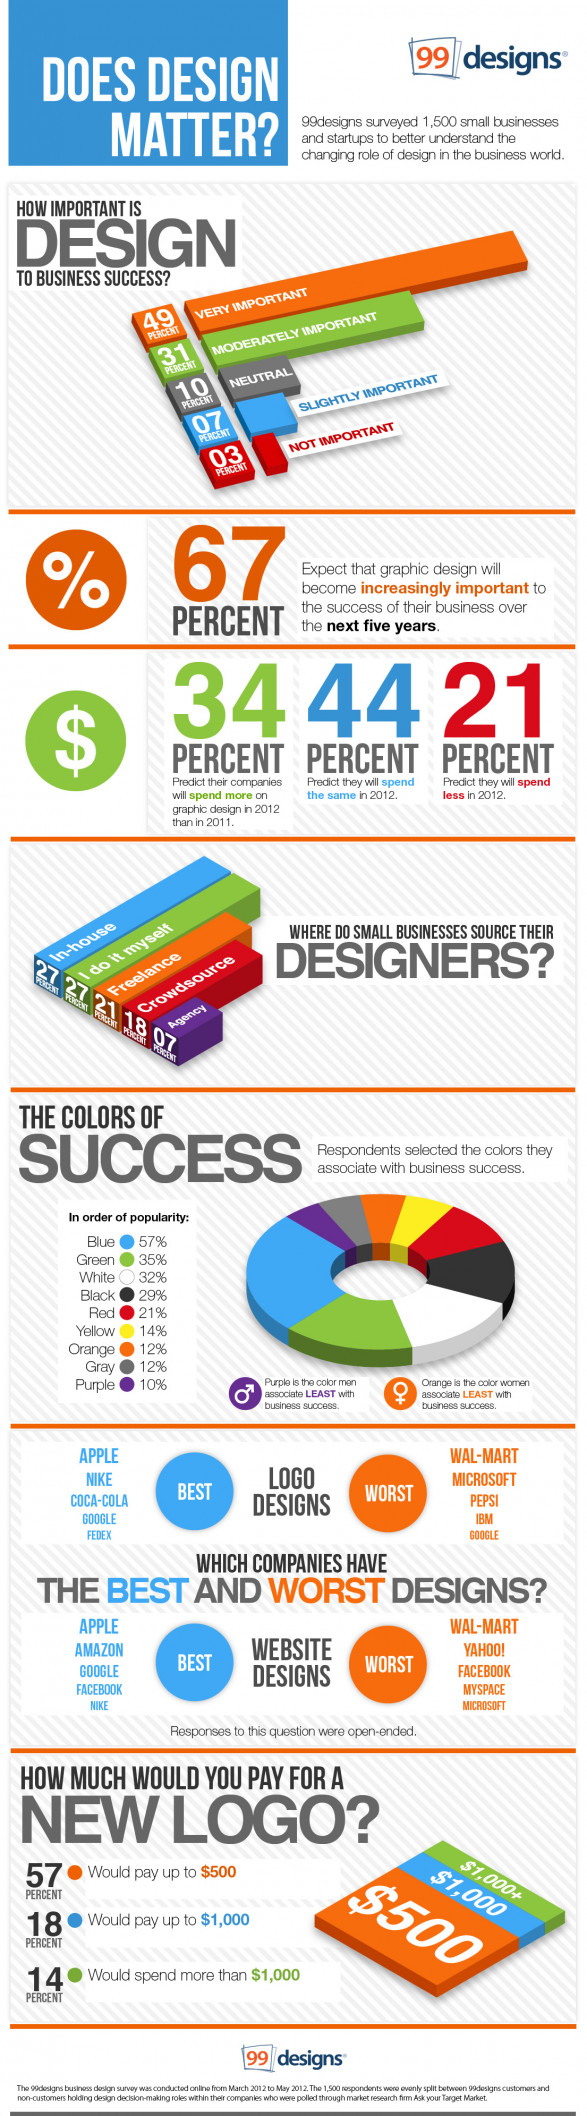 Does Design Matter? 99designs Survey of 1,500 Small Businesses and Startups